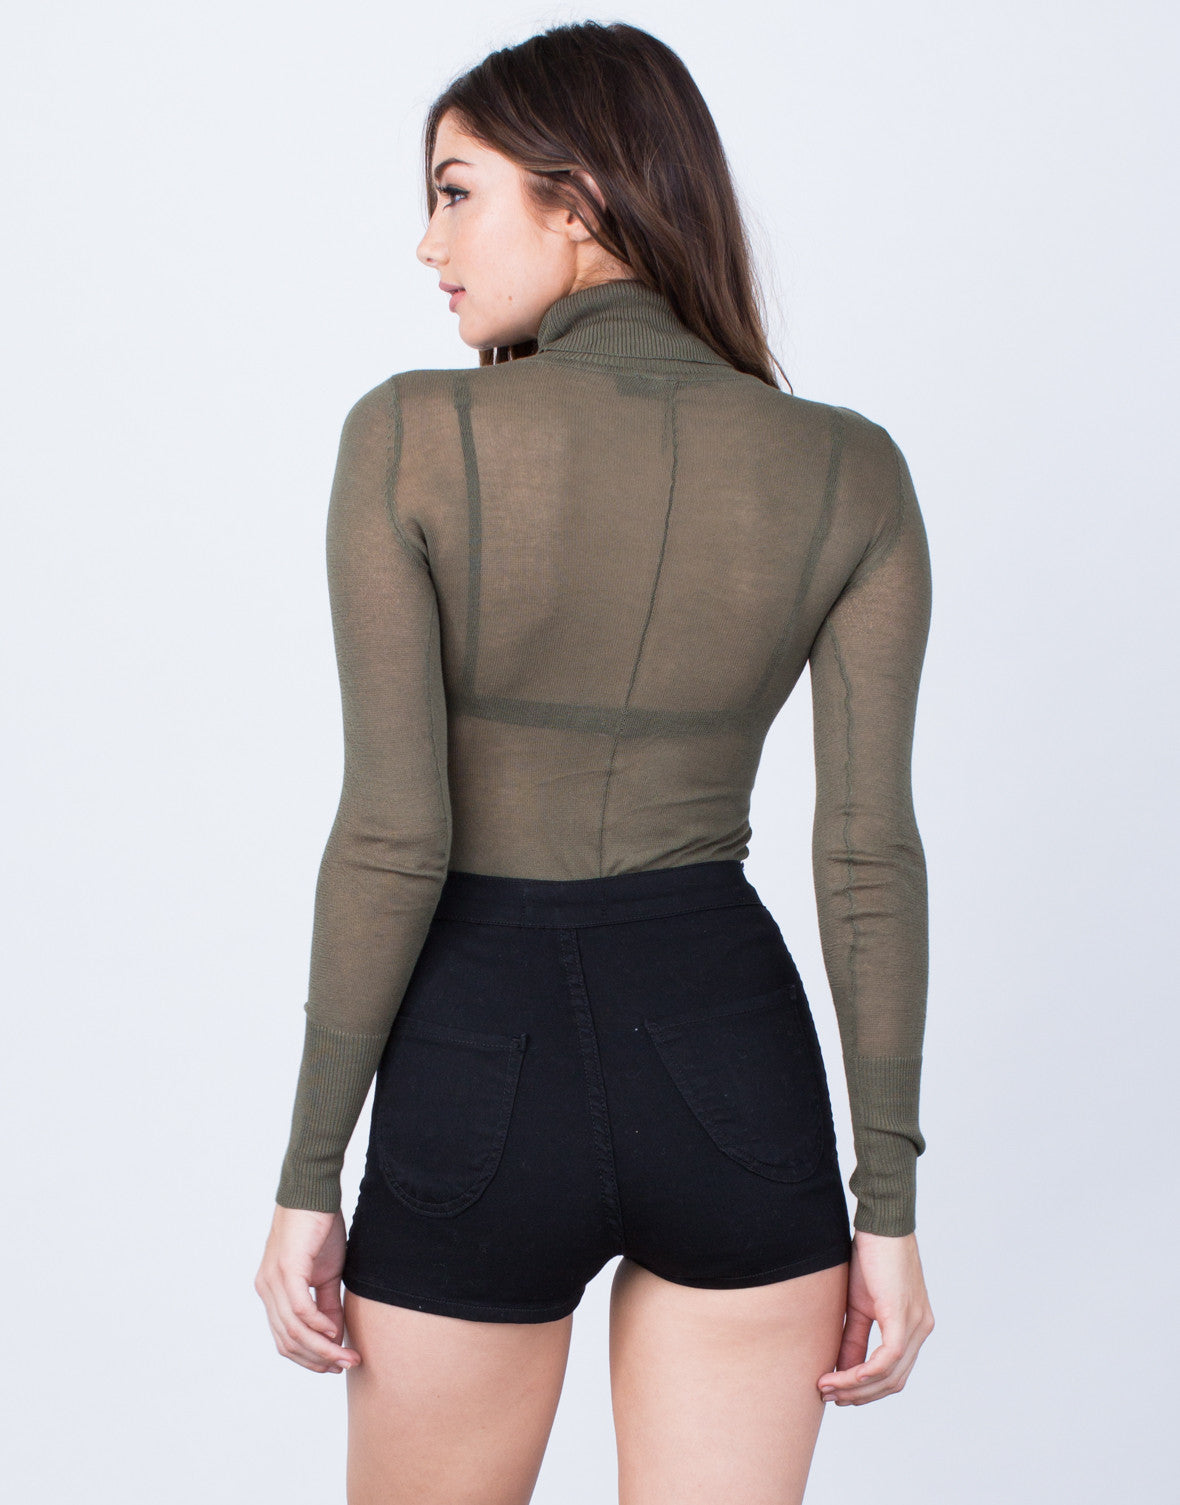 Back View of Lightweight Sweater Bodysuit